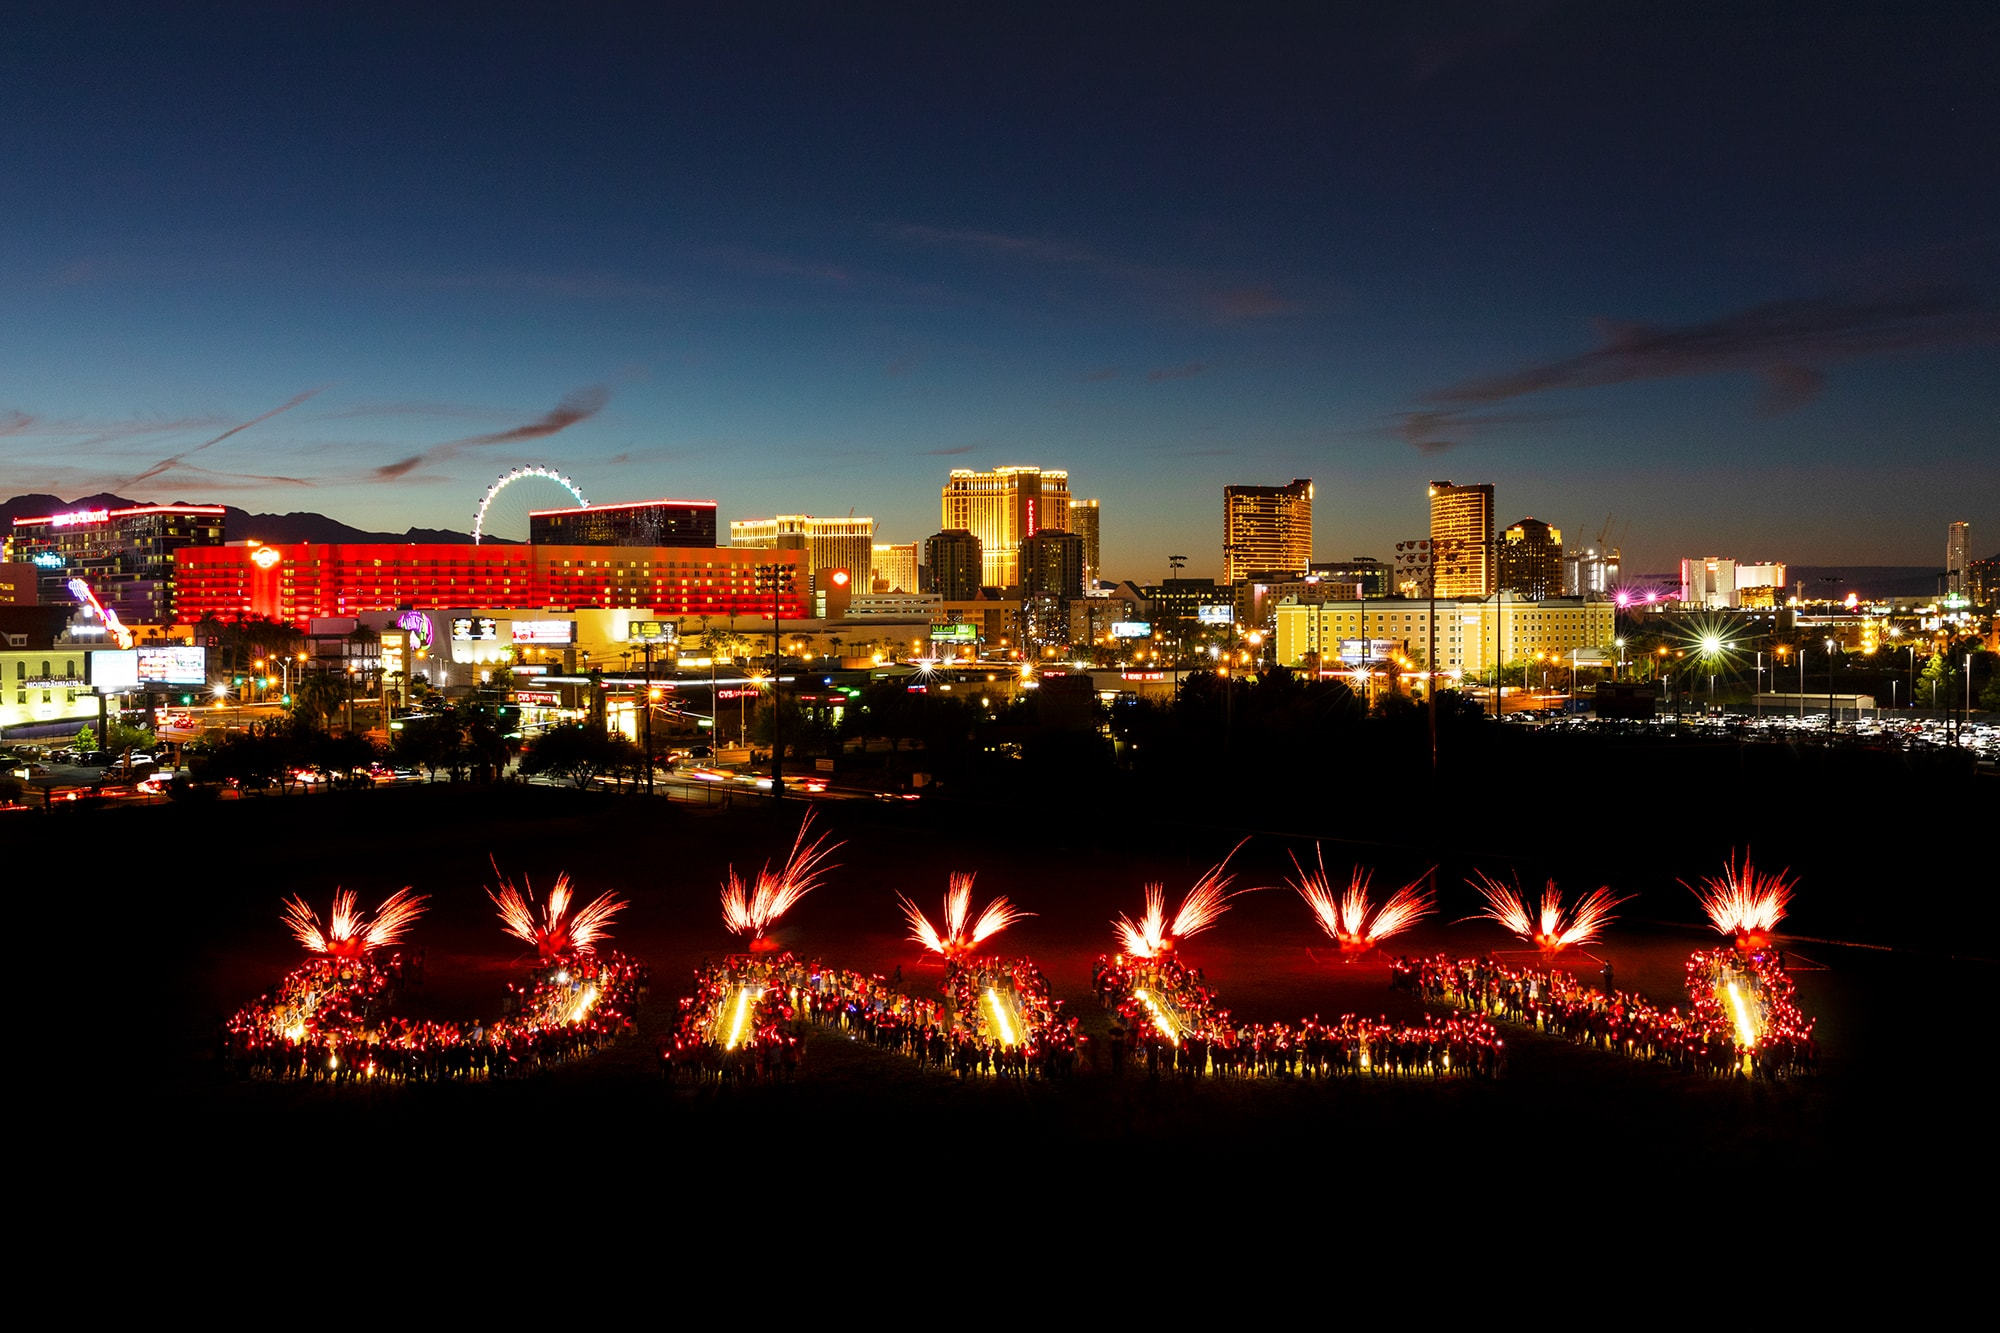 U.N.L.V. letter formation and fireworks display with the Las Vegas strip in the background